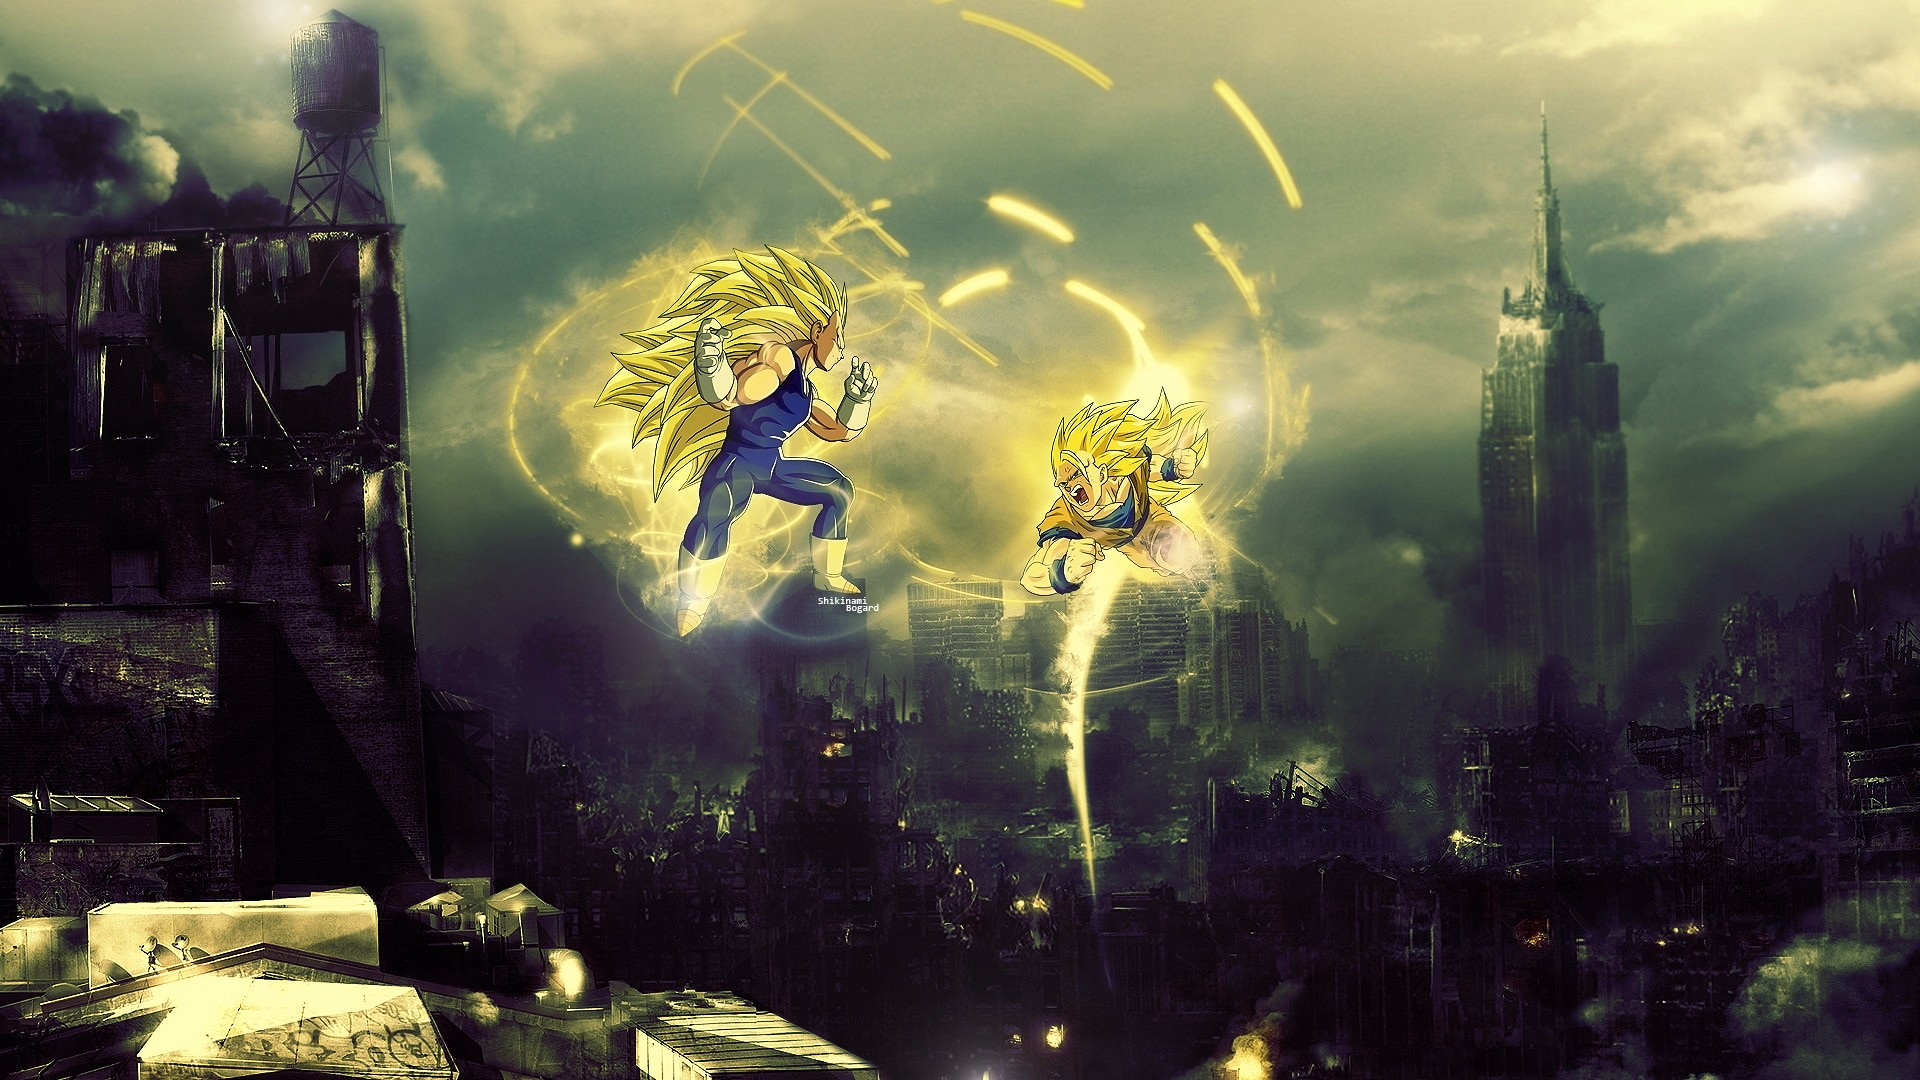 48 dbz hd wallpaper 1920x1080 on wallpapersafari - 3d wallpaper of dragon ball z ...